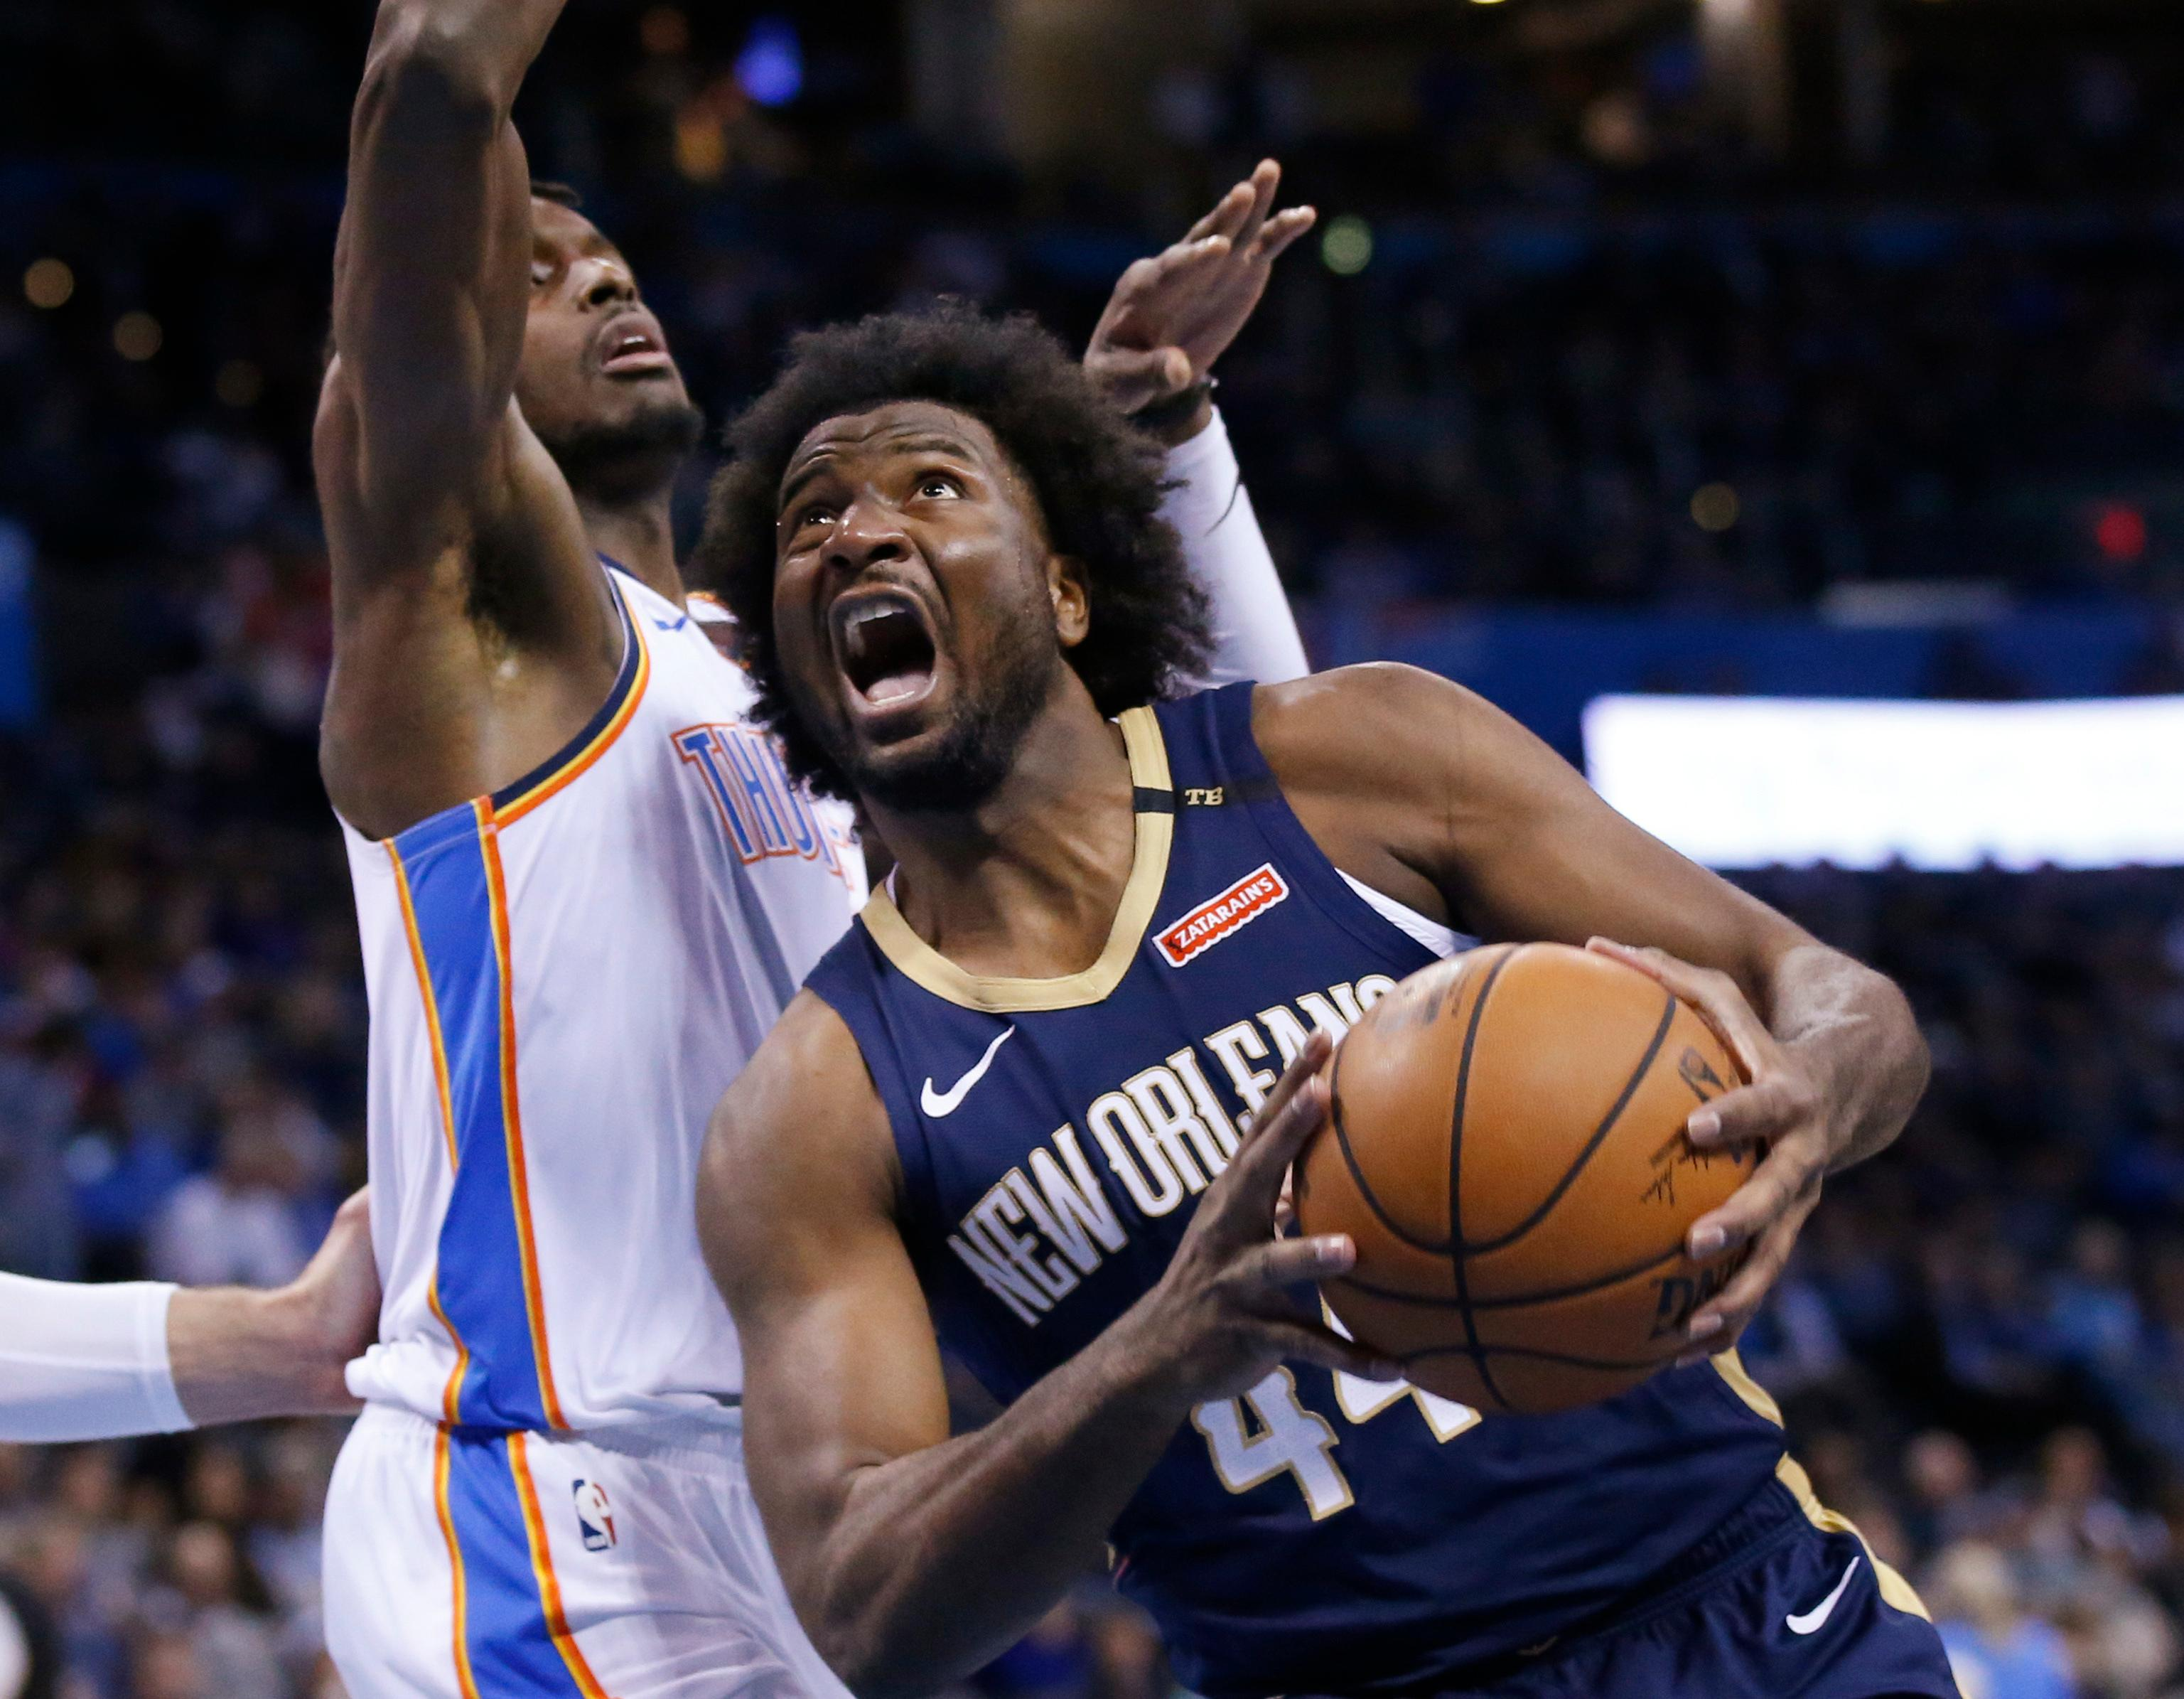 New Orleans Pelicans forward Solomon Hill (44) drives around Oklahoma City Thunder forward Jerami Grant, left, during the first half of an NBA basketball game in Oklahoma City, Thursday, Jan. 24, 2019. (AP Photo/Sue Ogrocki)